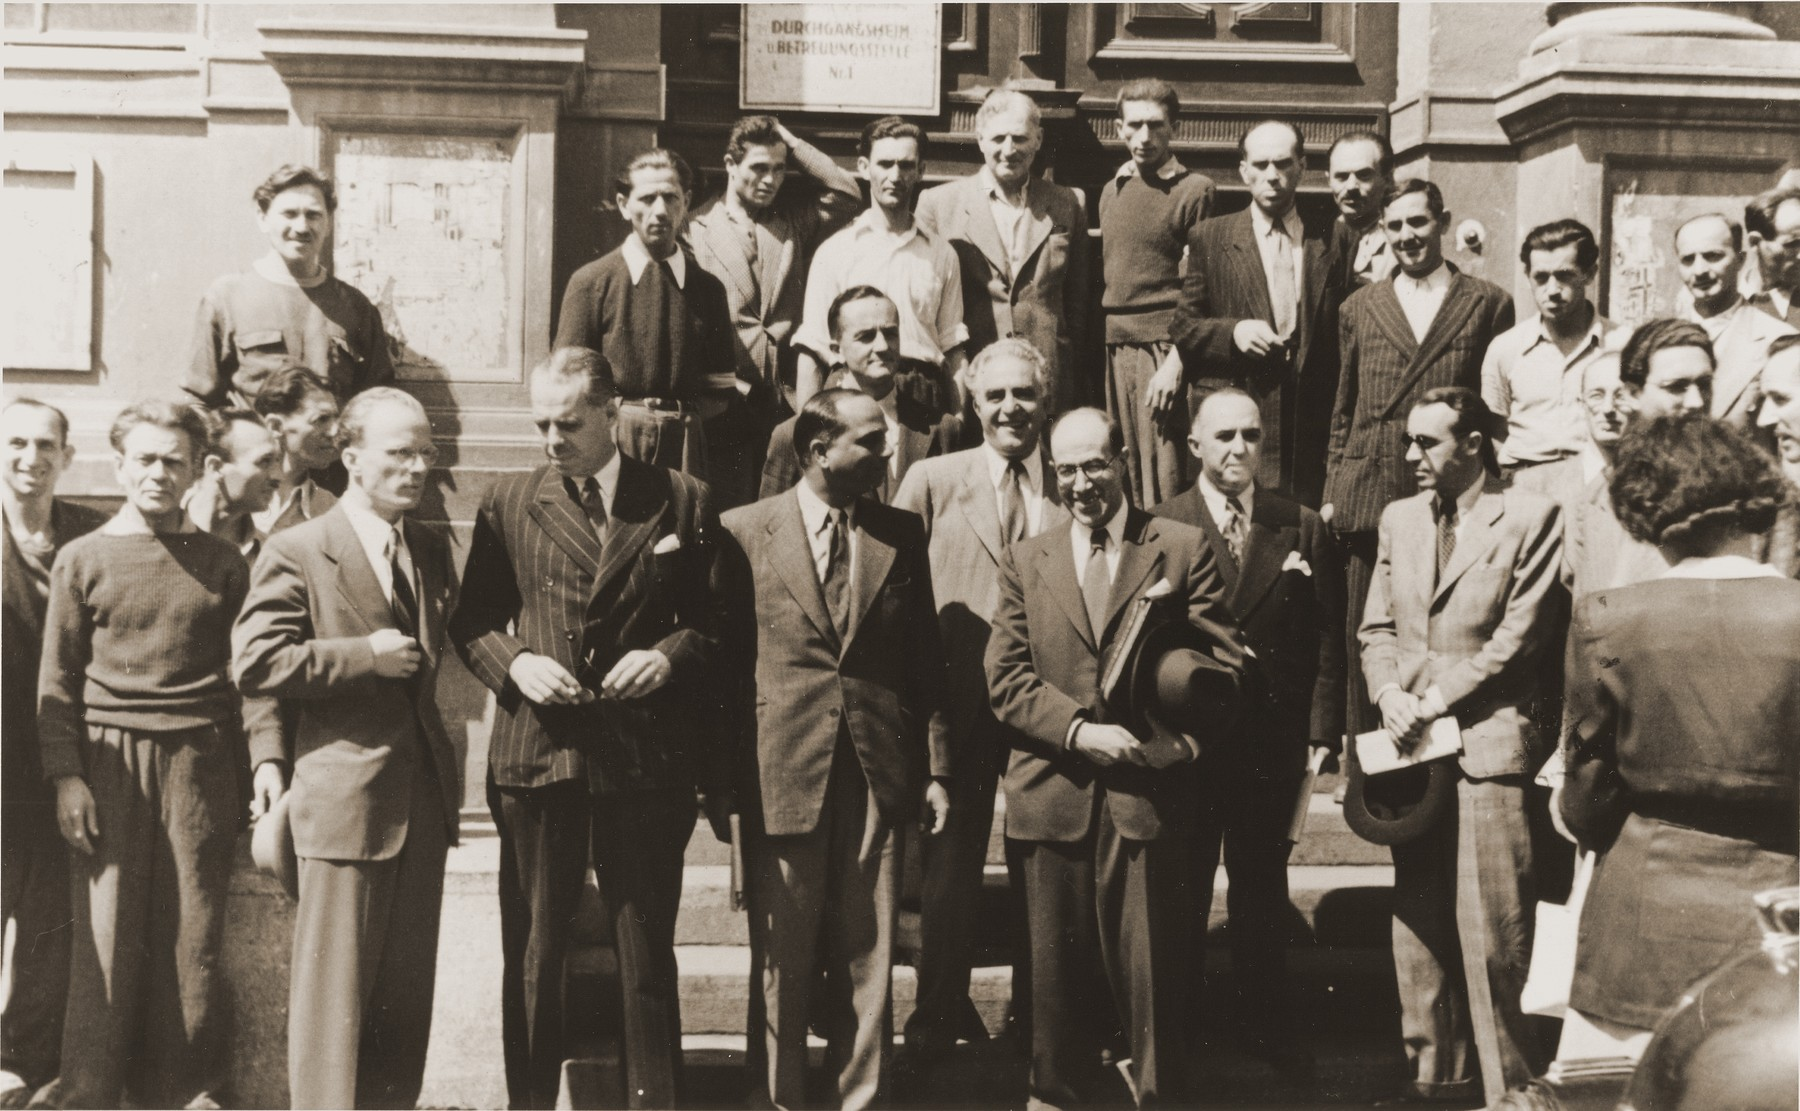 Members of the United Nations Special Commission on Palestine pose on the steps of the Rothschild Hospital during their visit to Vienna.  Bronislow Teichholz, the director of the hospital, is pictured in the center.